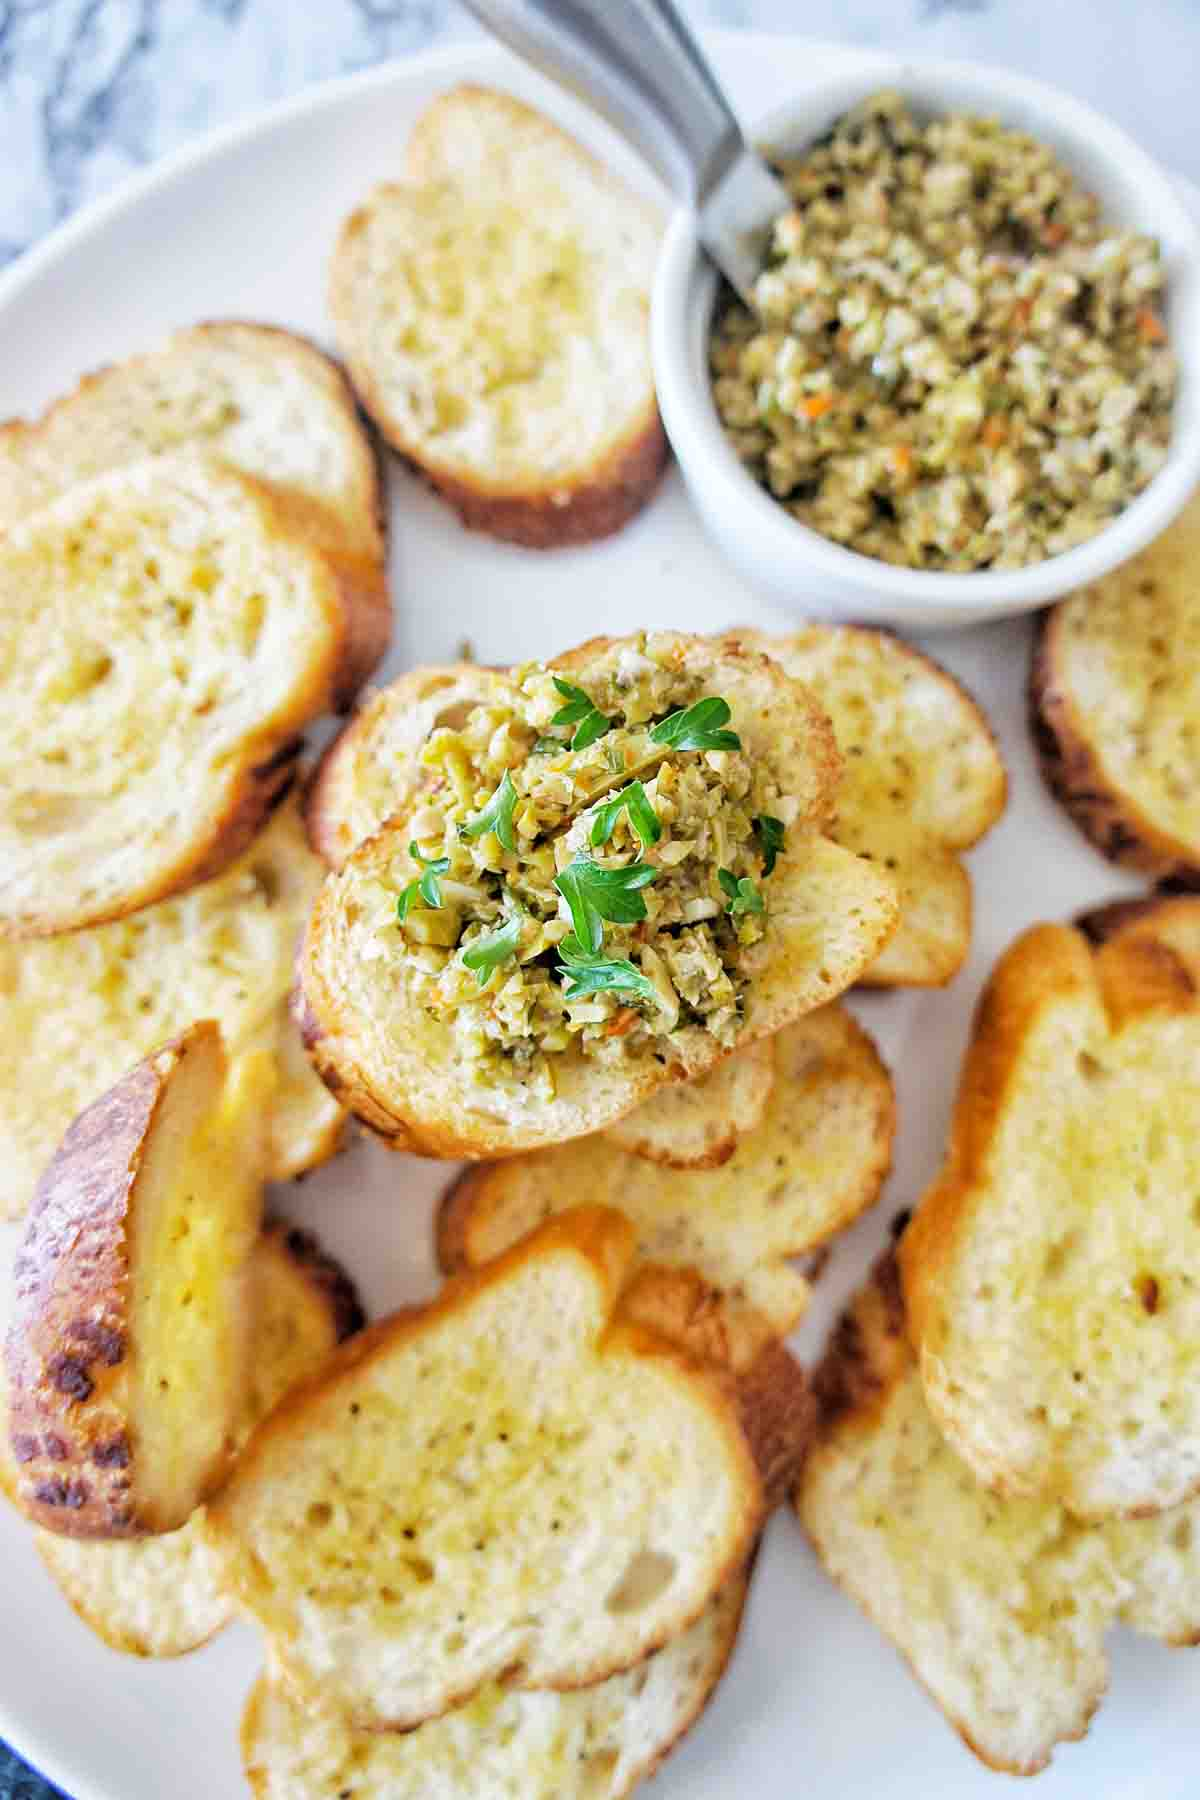 Crostini on a white plate with some plain and 1 with tapenade topping